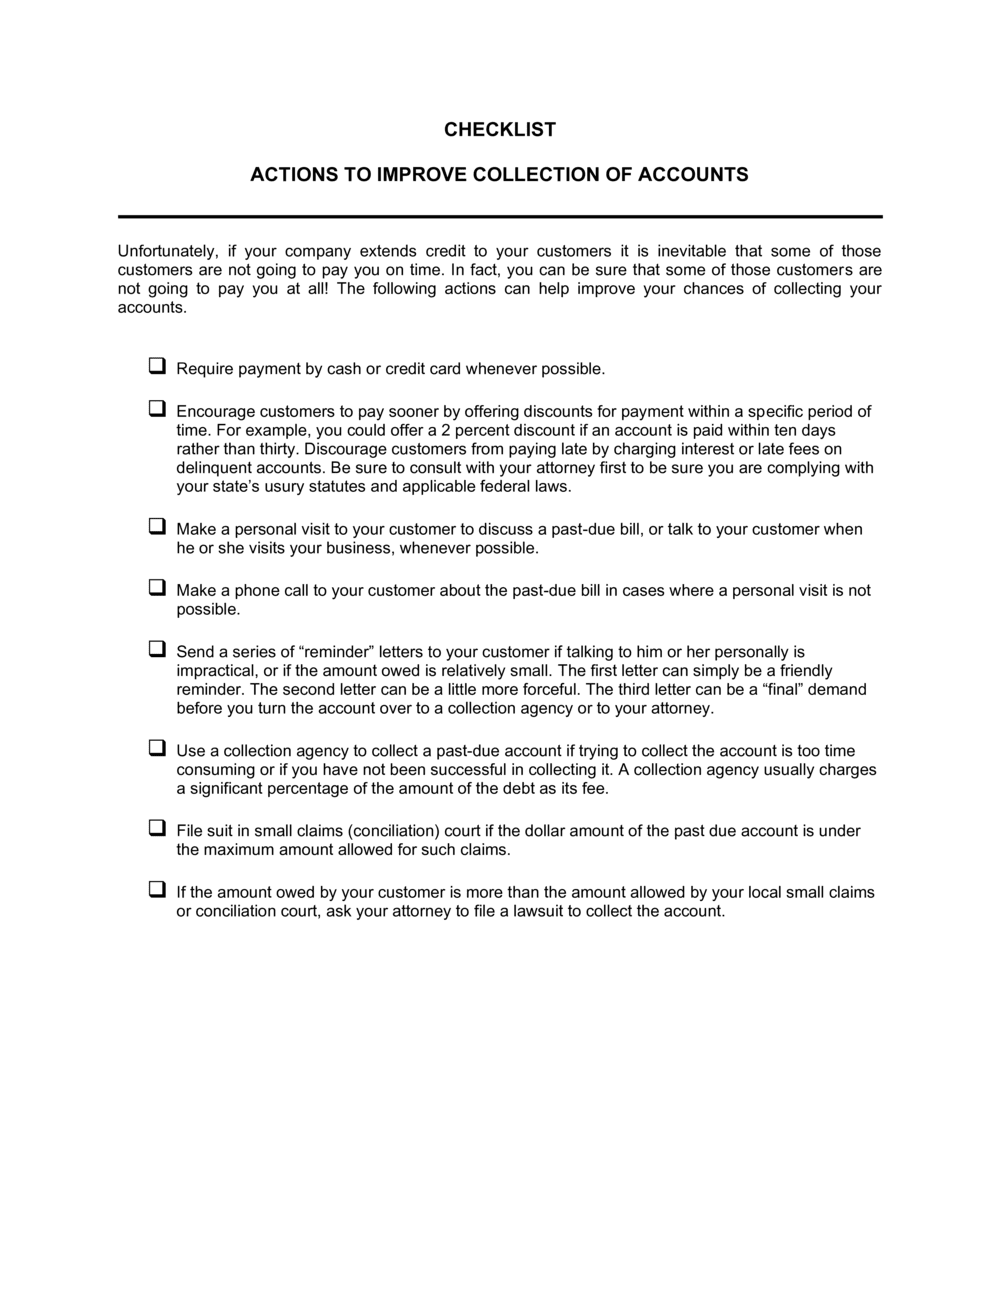 Business-in-a-Box's Checklist Action to Improve Collection of Accounts Template